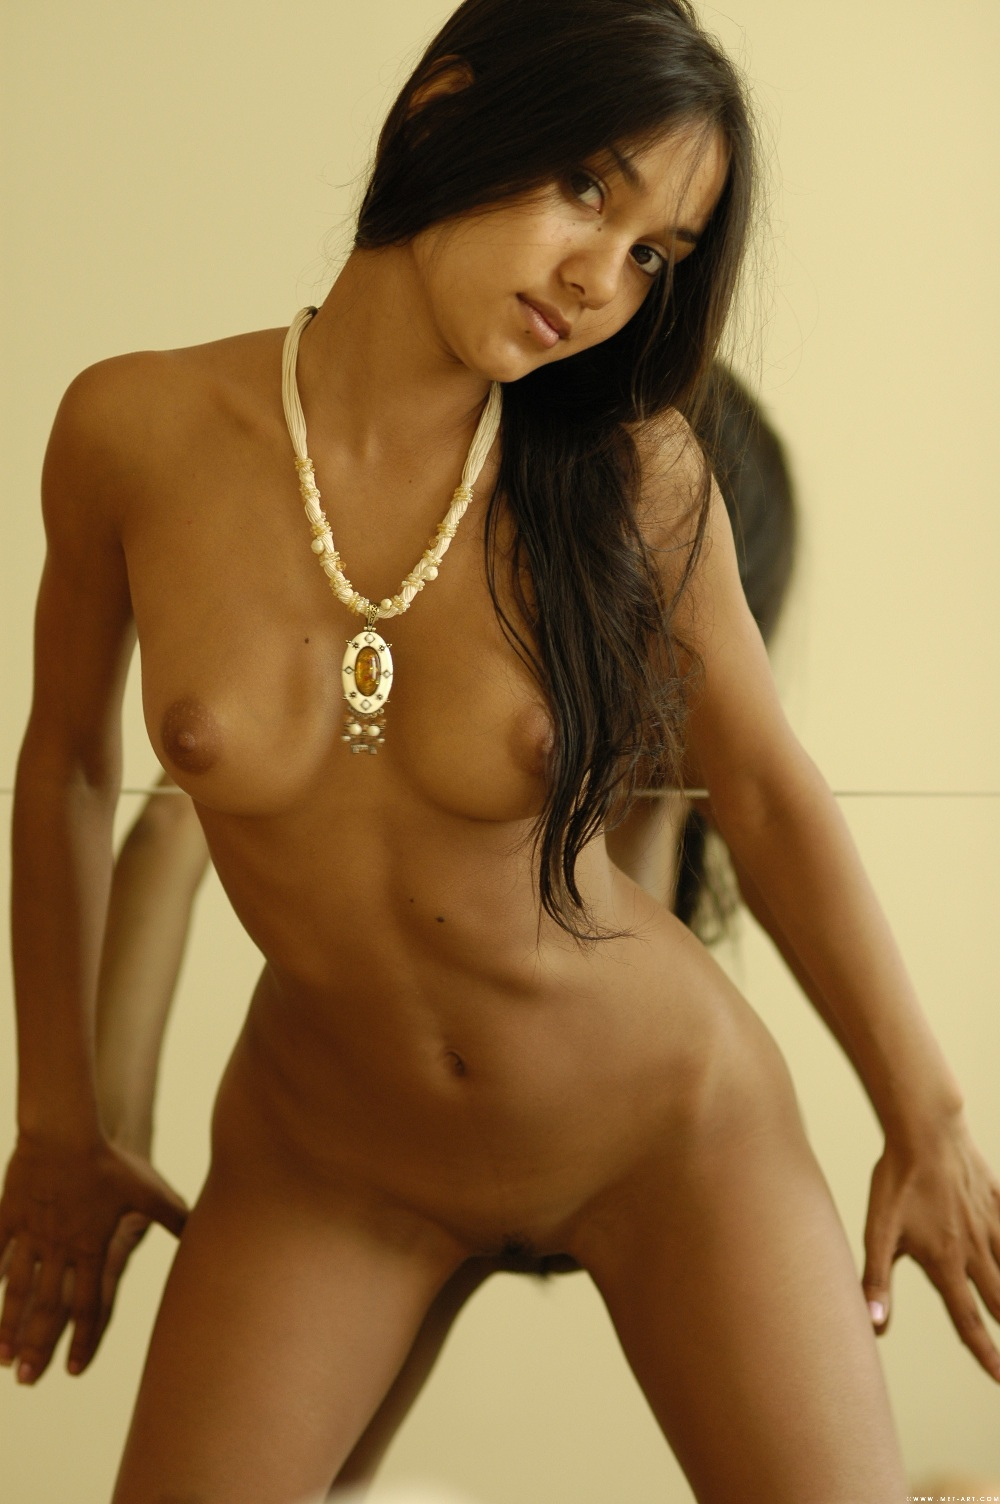 from Marcus naked dark indian girls